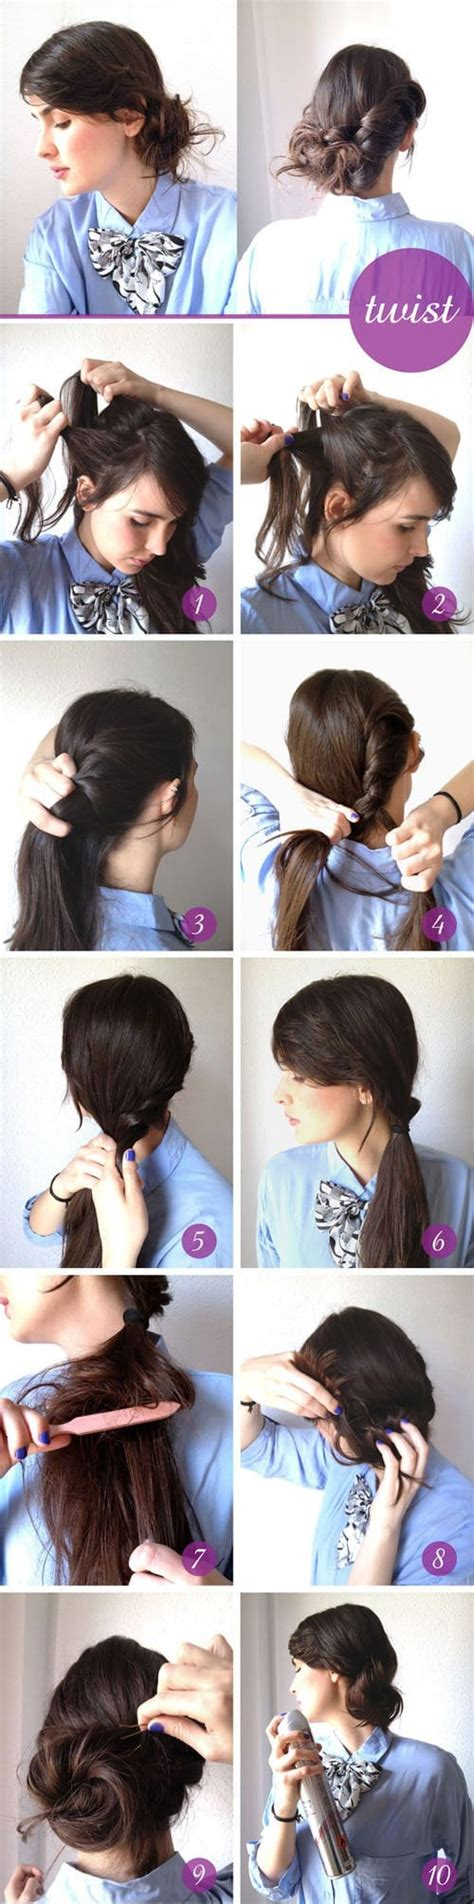 easy and quick daily hairstyles 15 quick and easy everyday hairstyle ideas